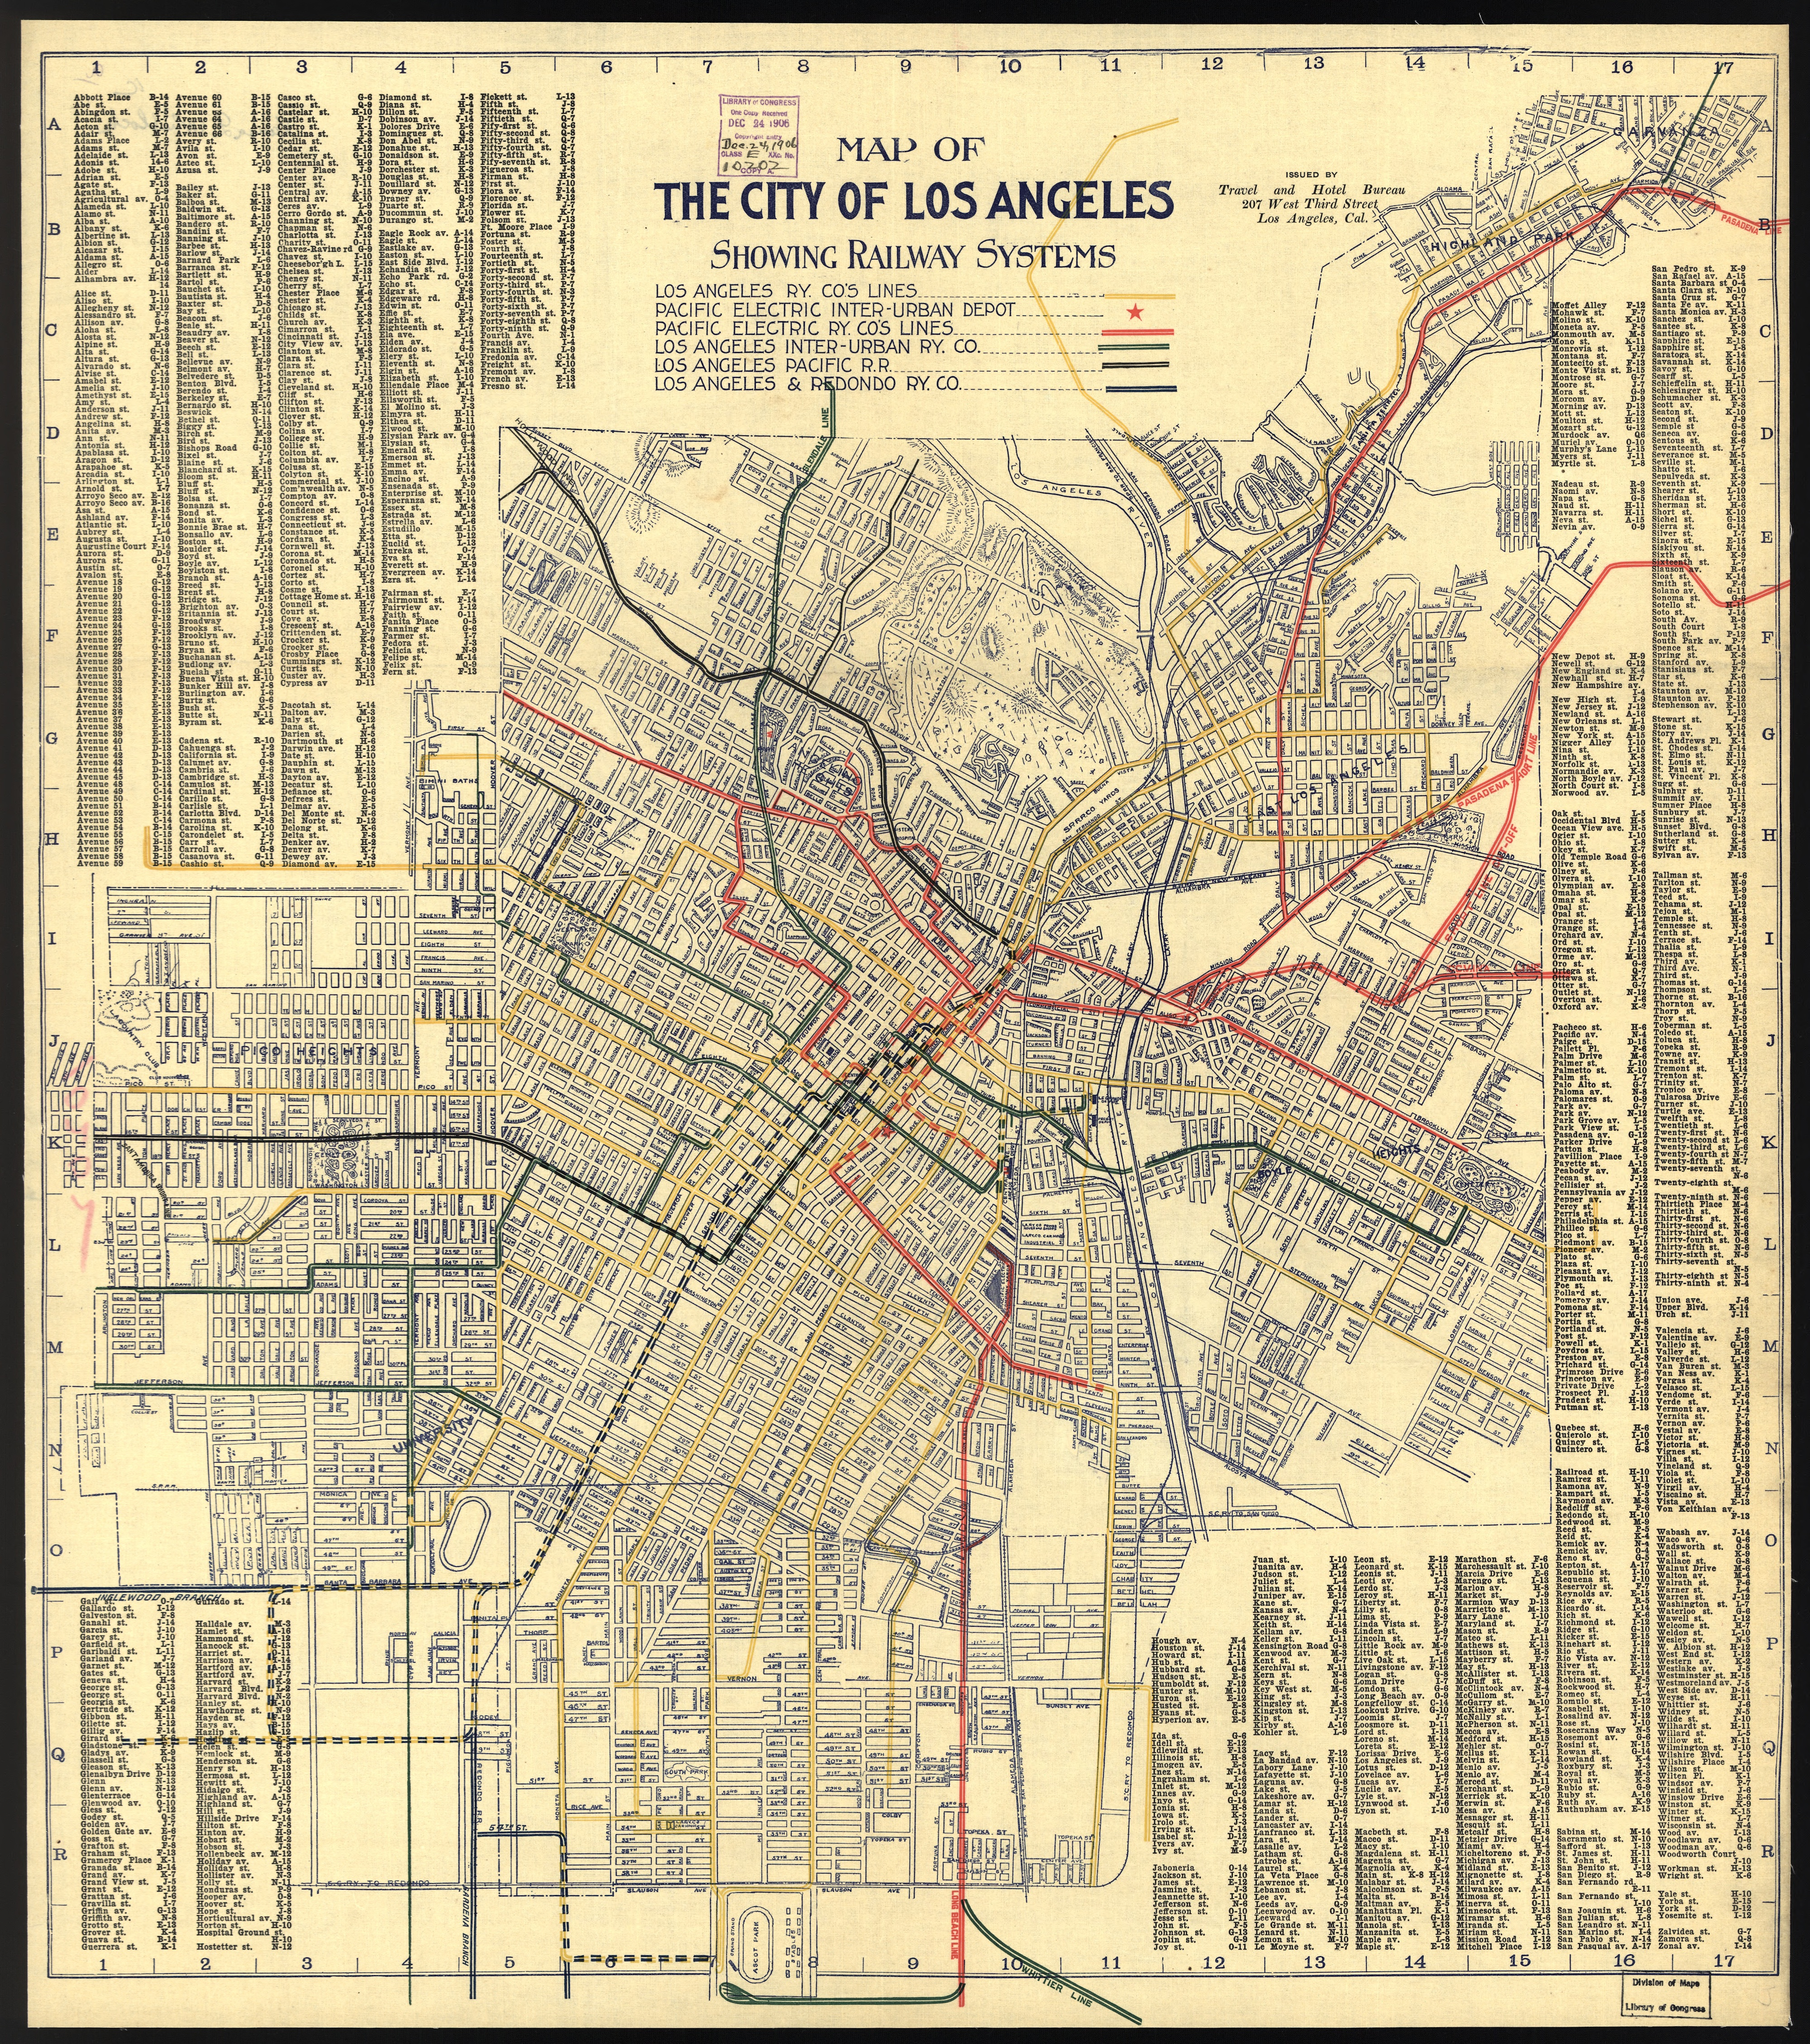 Transit History In Los Angeles A  Map Of The Citys Streetcar - Los angeles in map